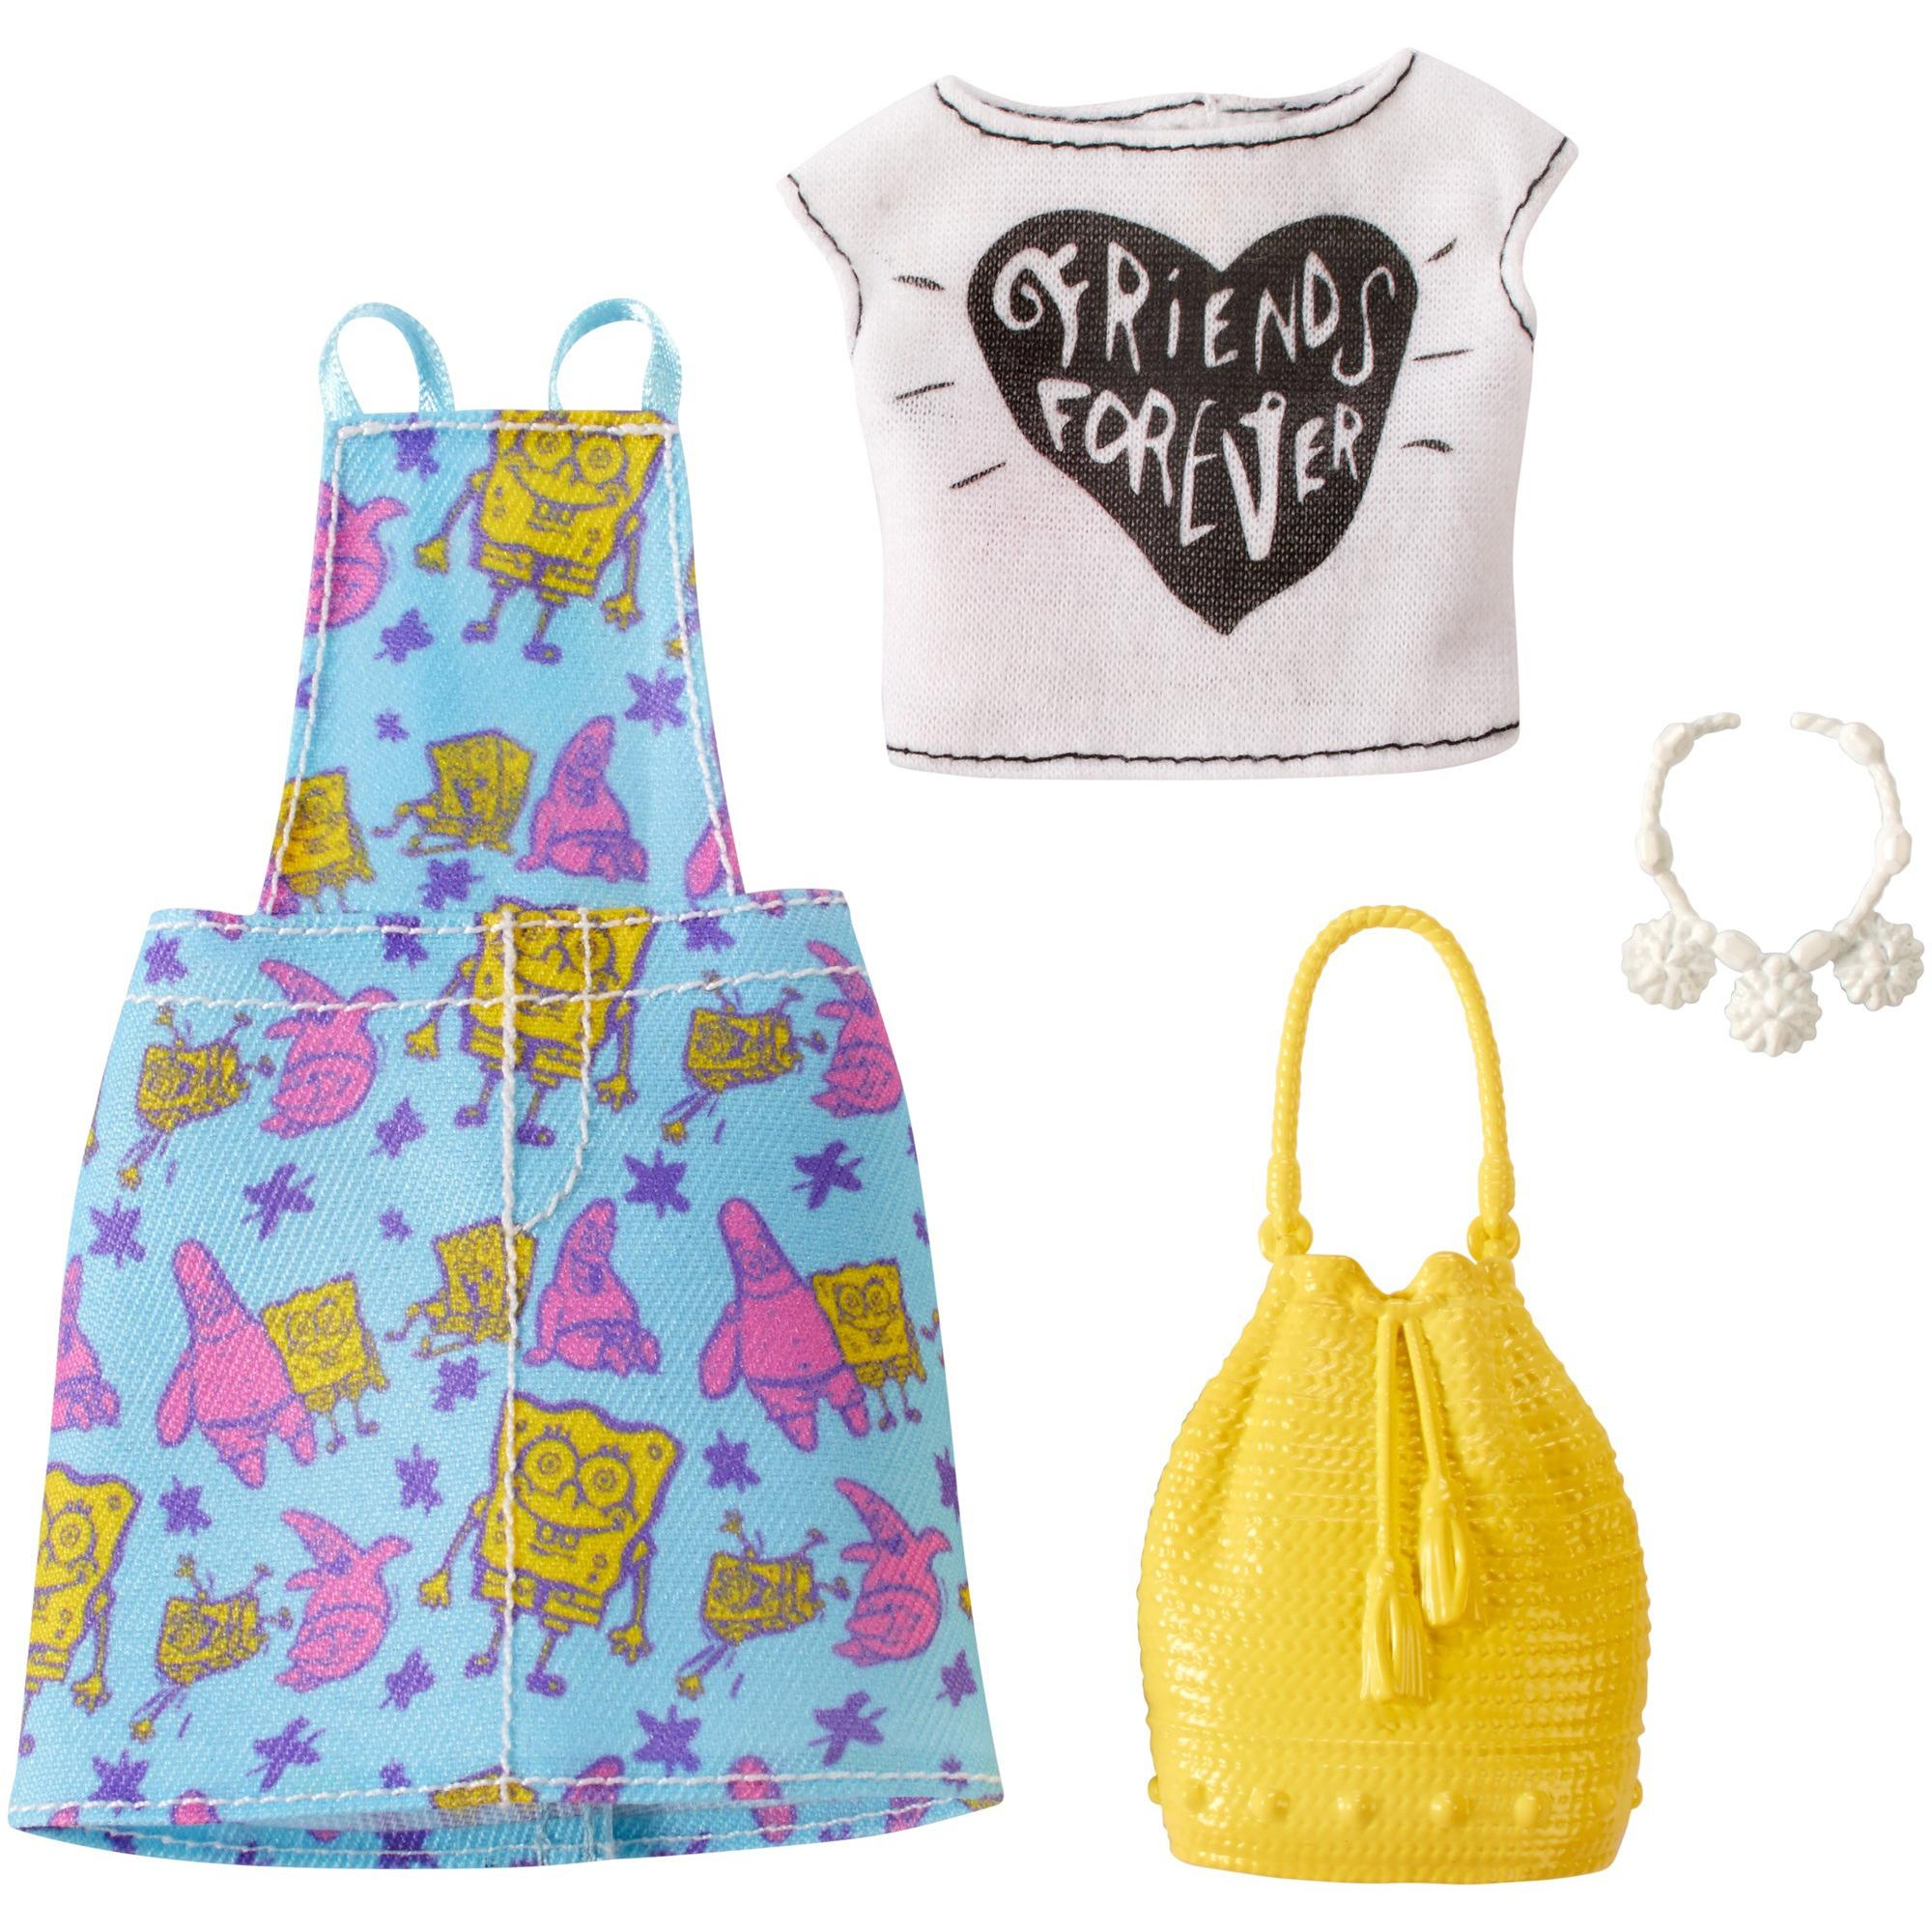 Barbie Spongebob Squarepants Fashion Pack #5